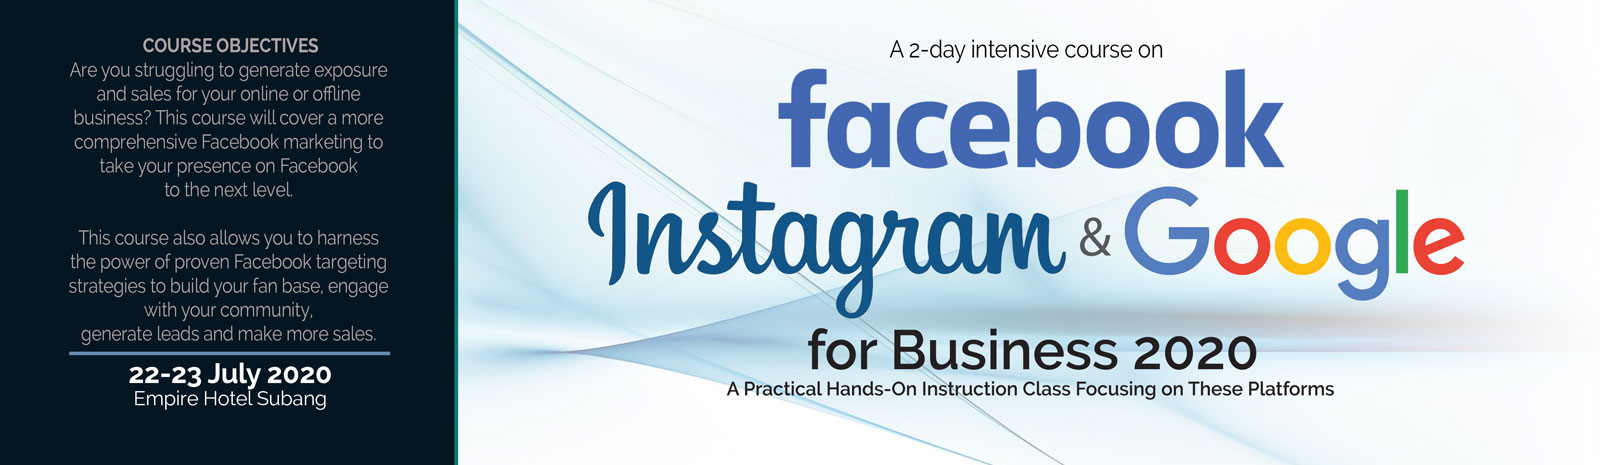 Facebook, Instagram and Google for Business 2020